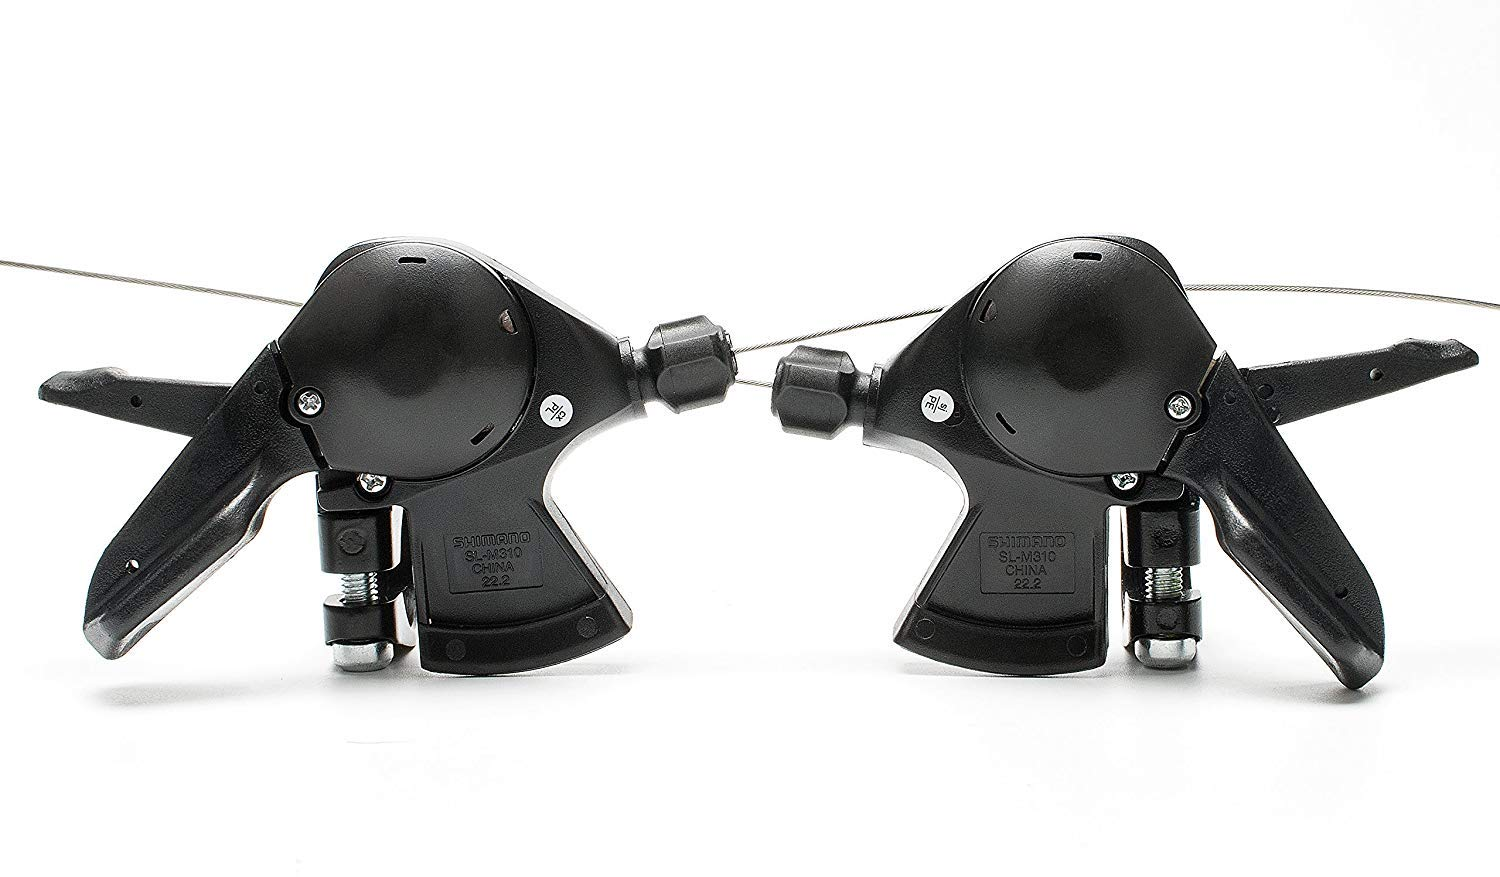 lundeng OEM ShimanoAcera SL-M310 Rapid Fire Shifter 3x7 Speed Trigger Shift Levers Set with Inner Shift Cables Black